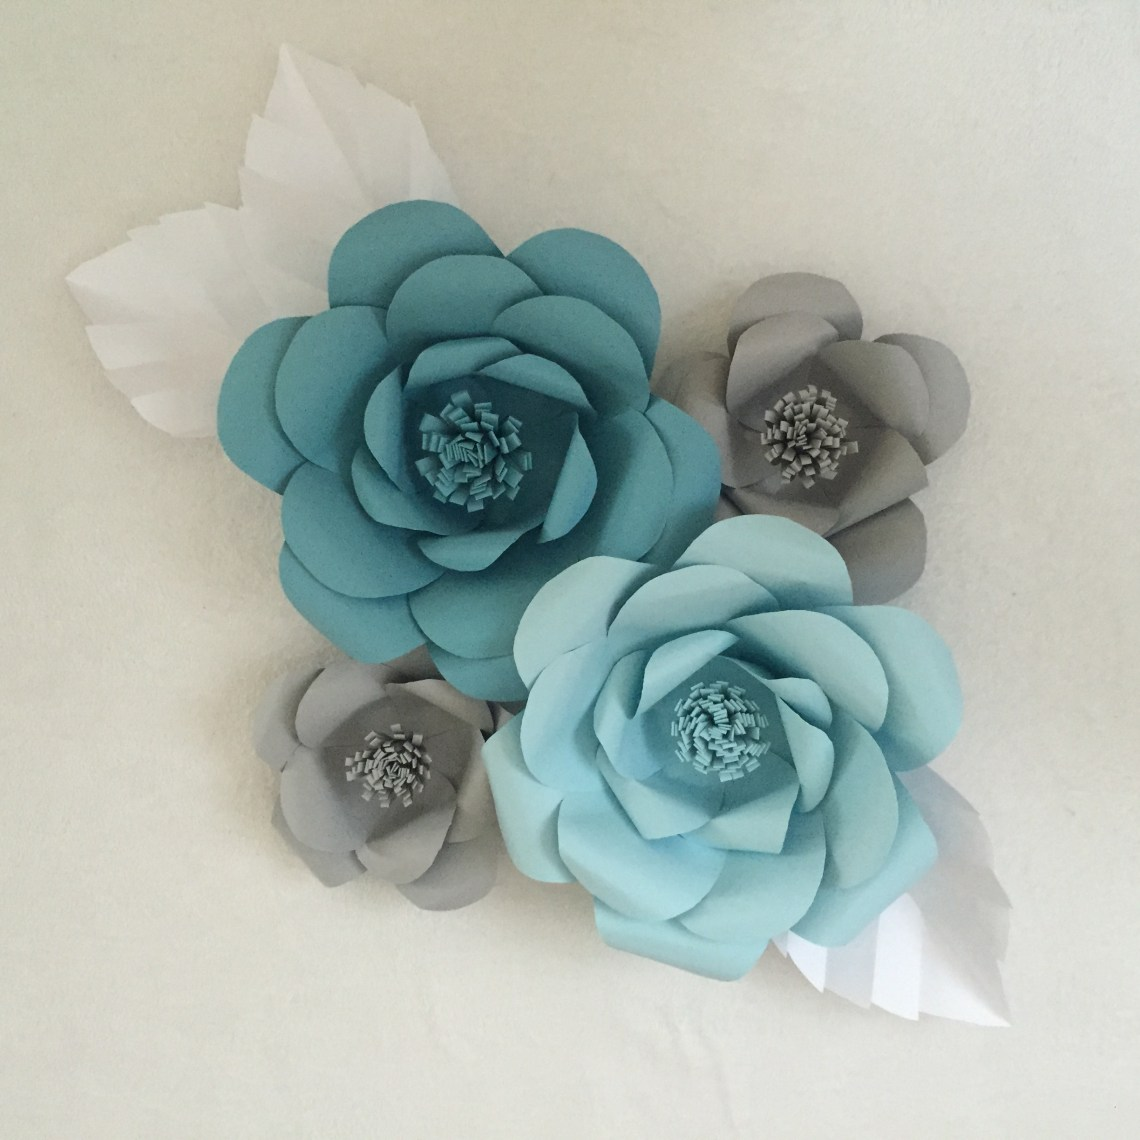 Paper flower backdrop ash and crafts paper flower backdrop paper flower wall giant paper flowers ashandcrafts mightylinksfo